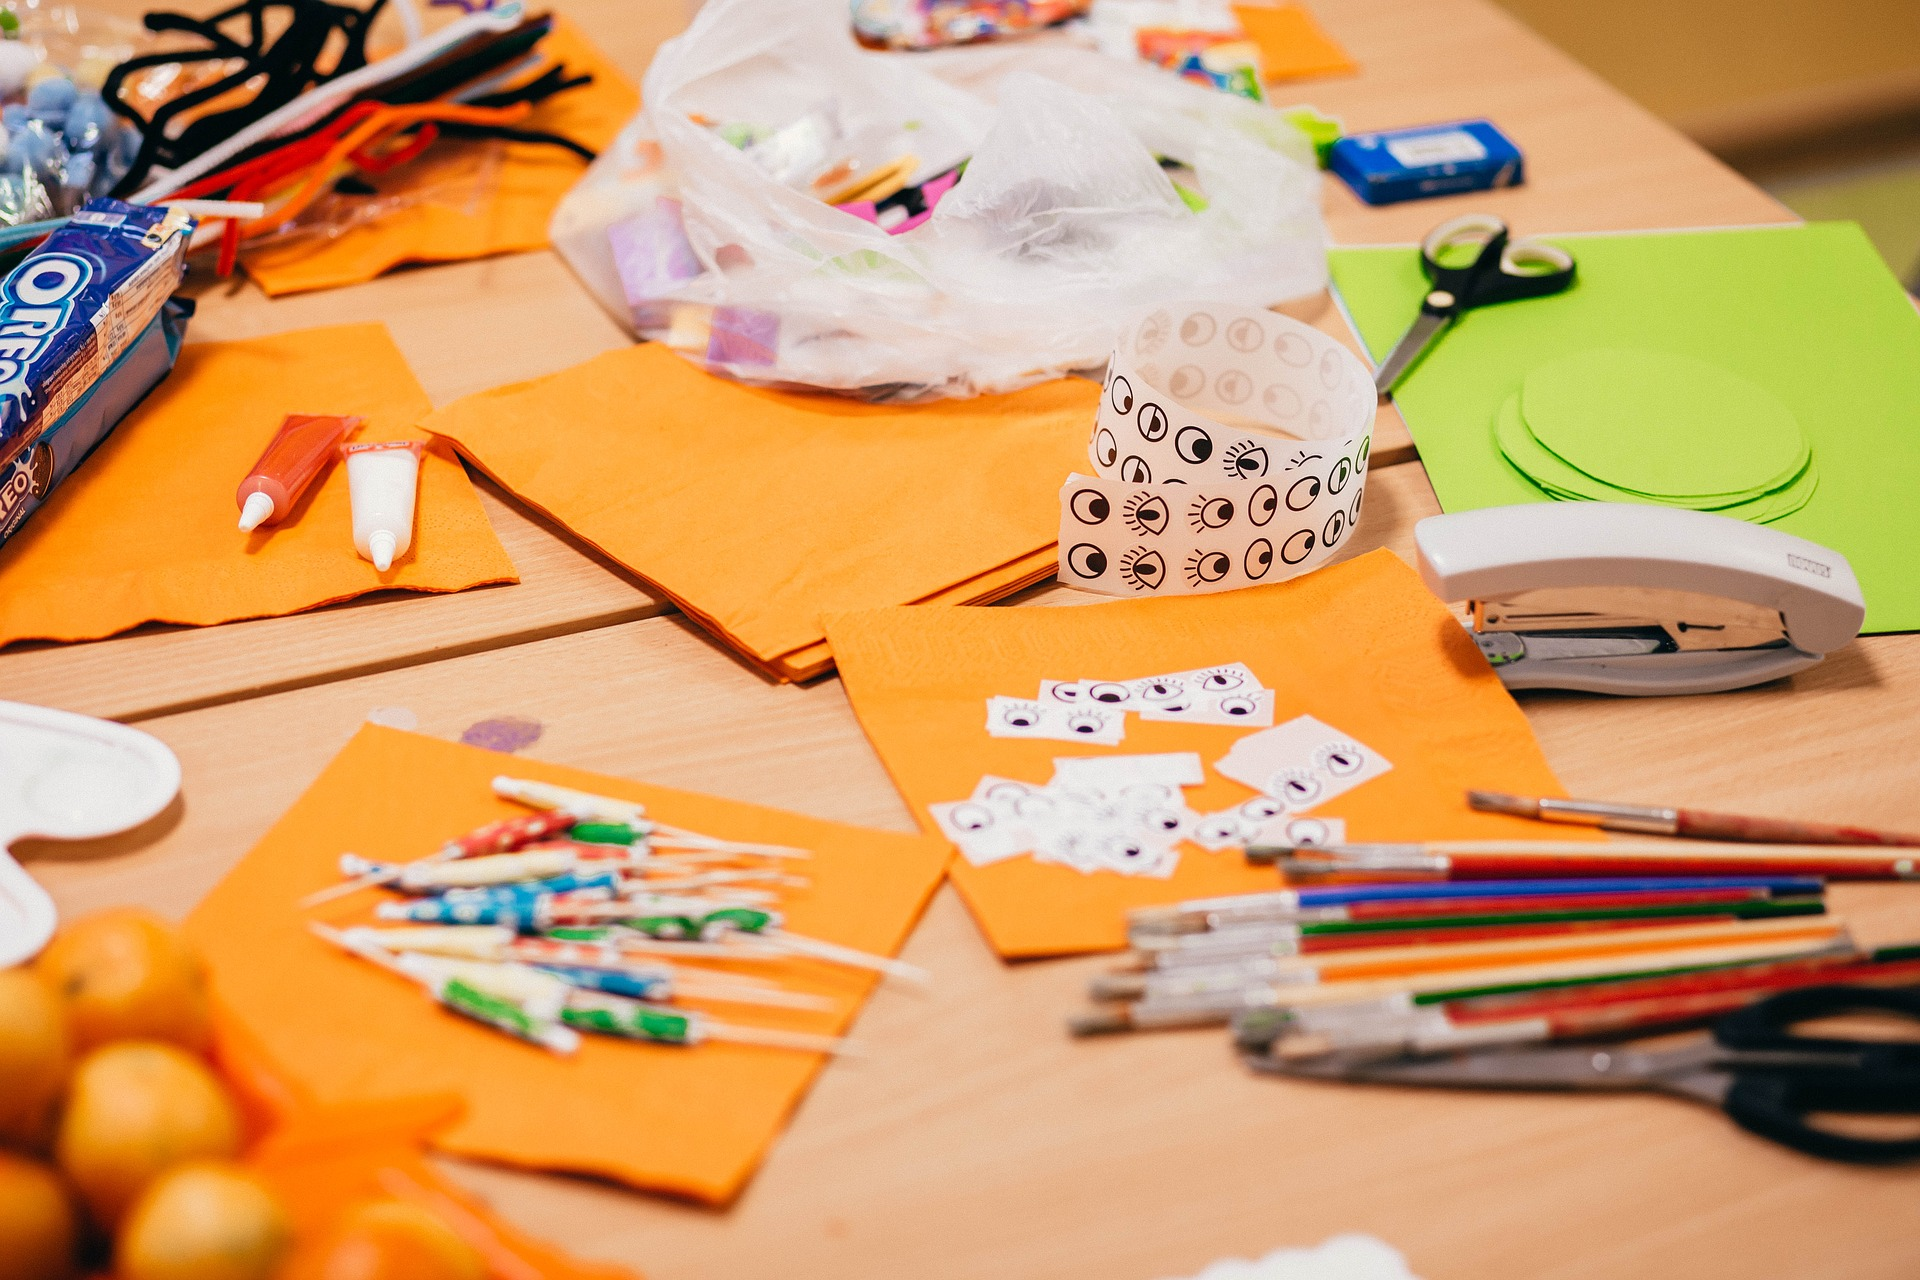 Crafting supplies on a table